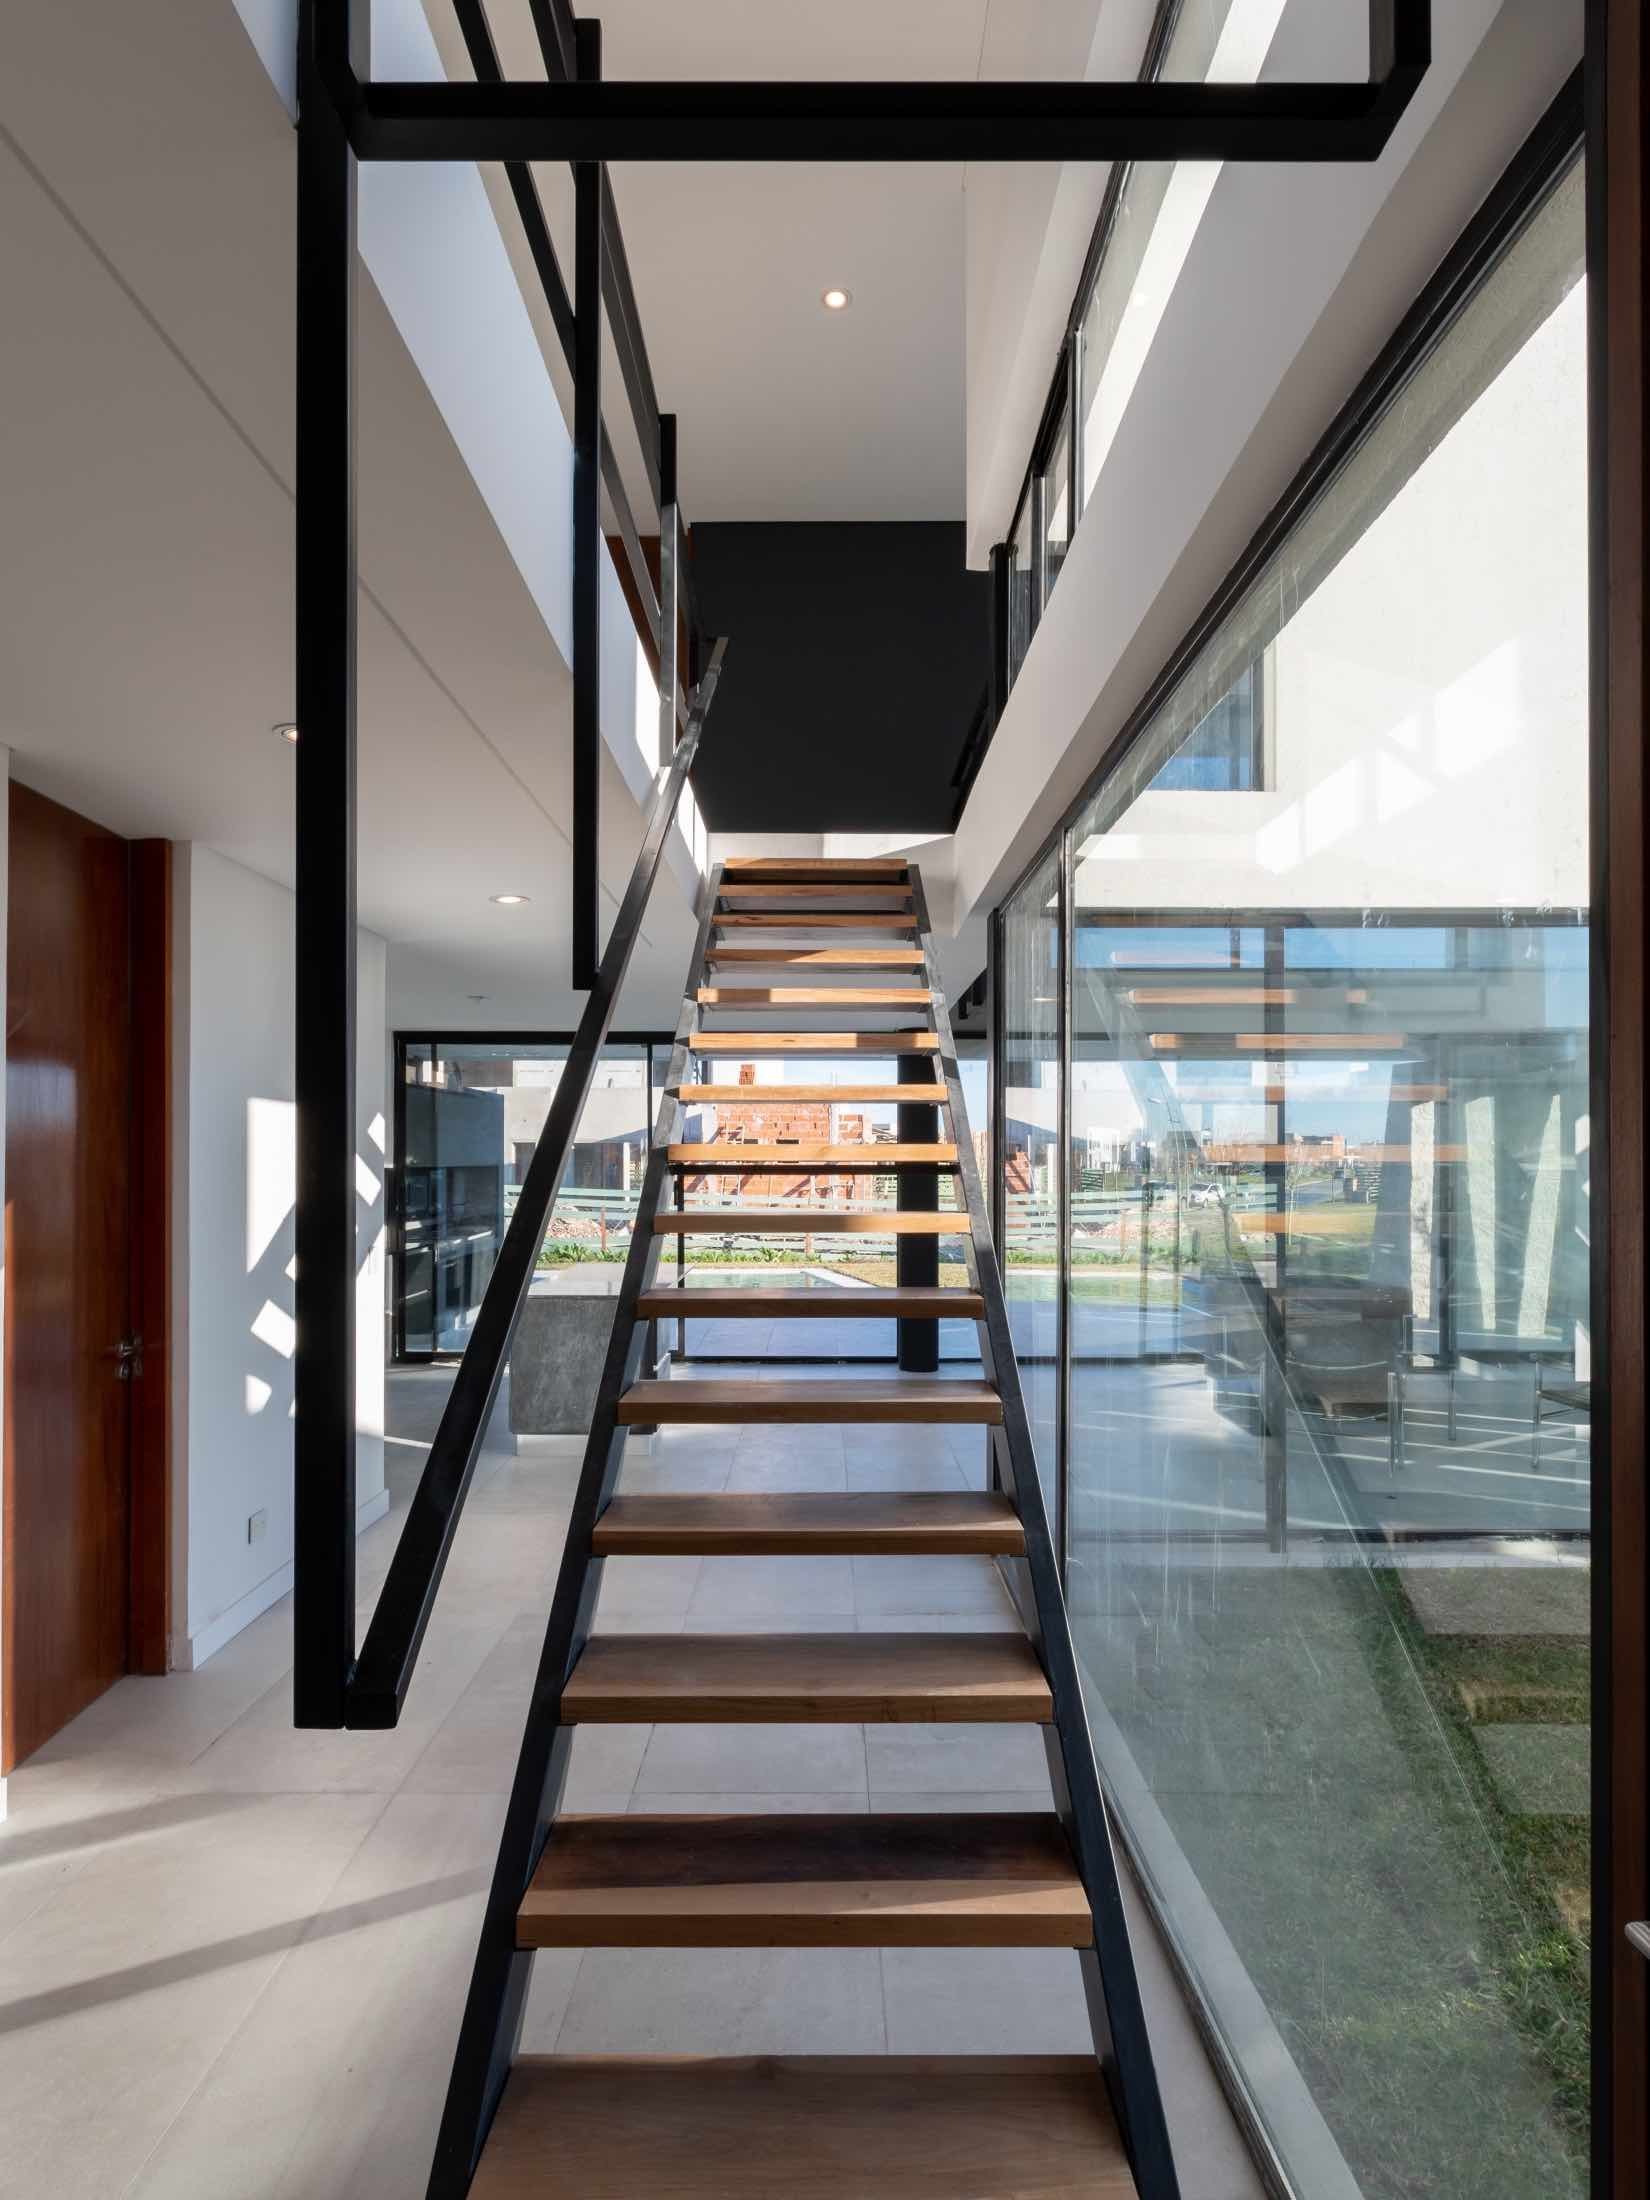 the wooden and steel staircase